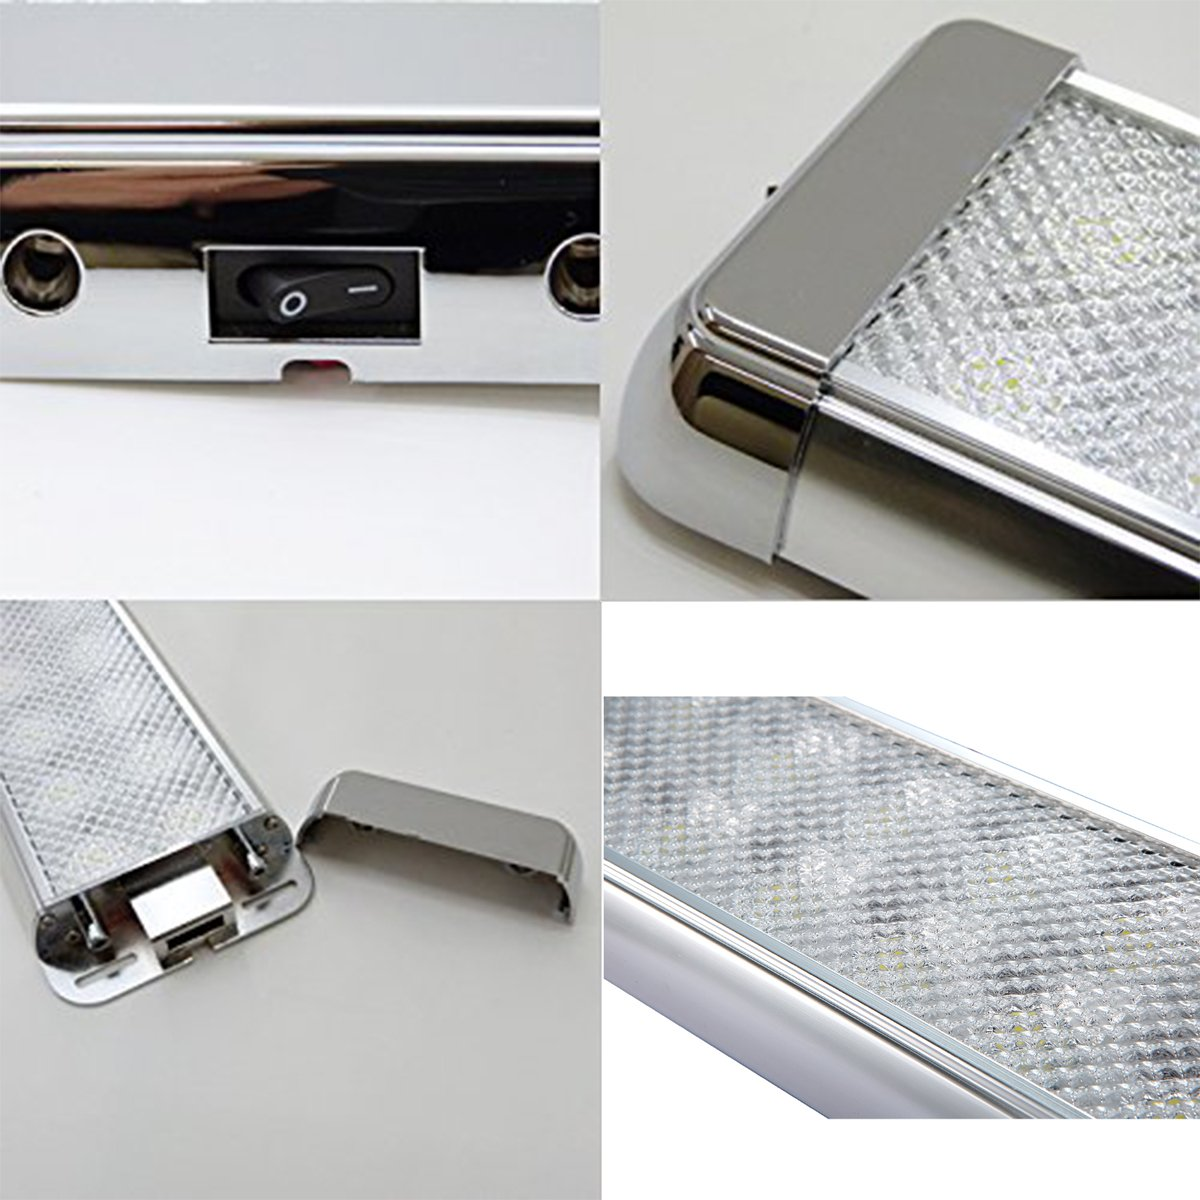 lightronic 41.8 Inches 60W LED Interior Dome Light Fixture Fit for RV, UTV and Boats by lightronic (Image #3)